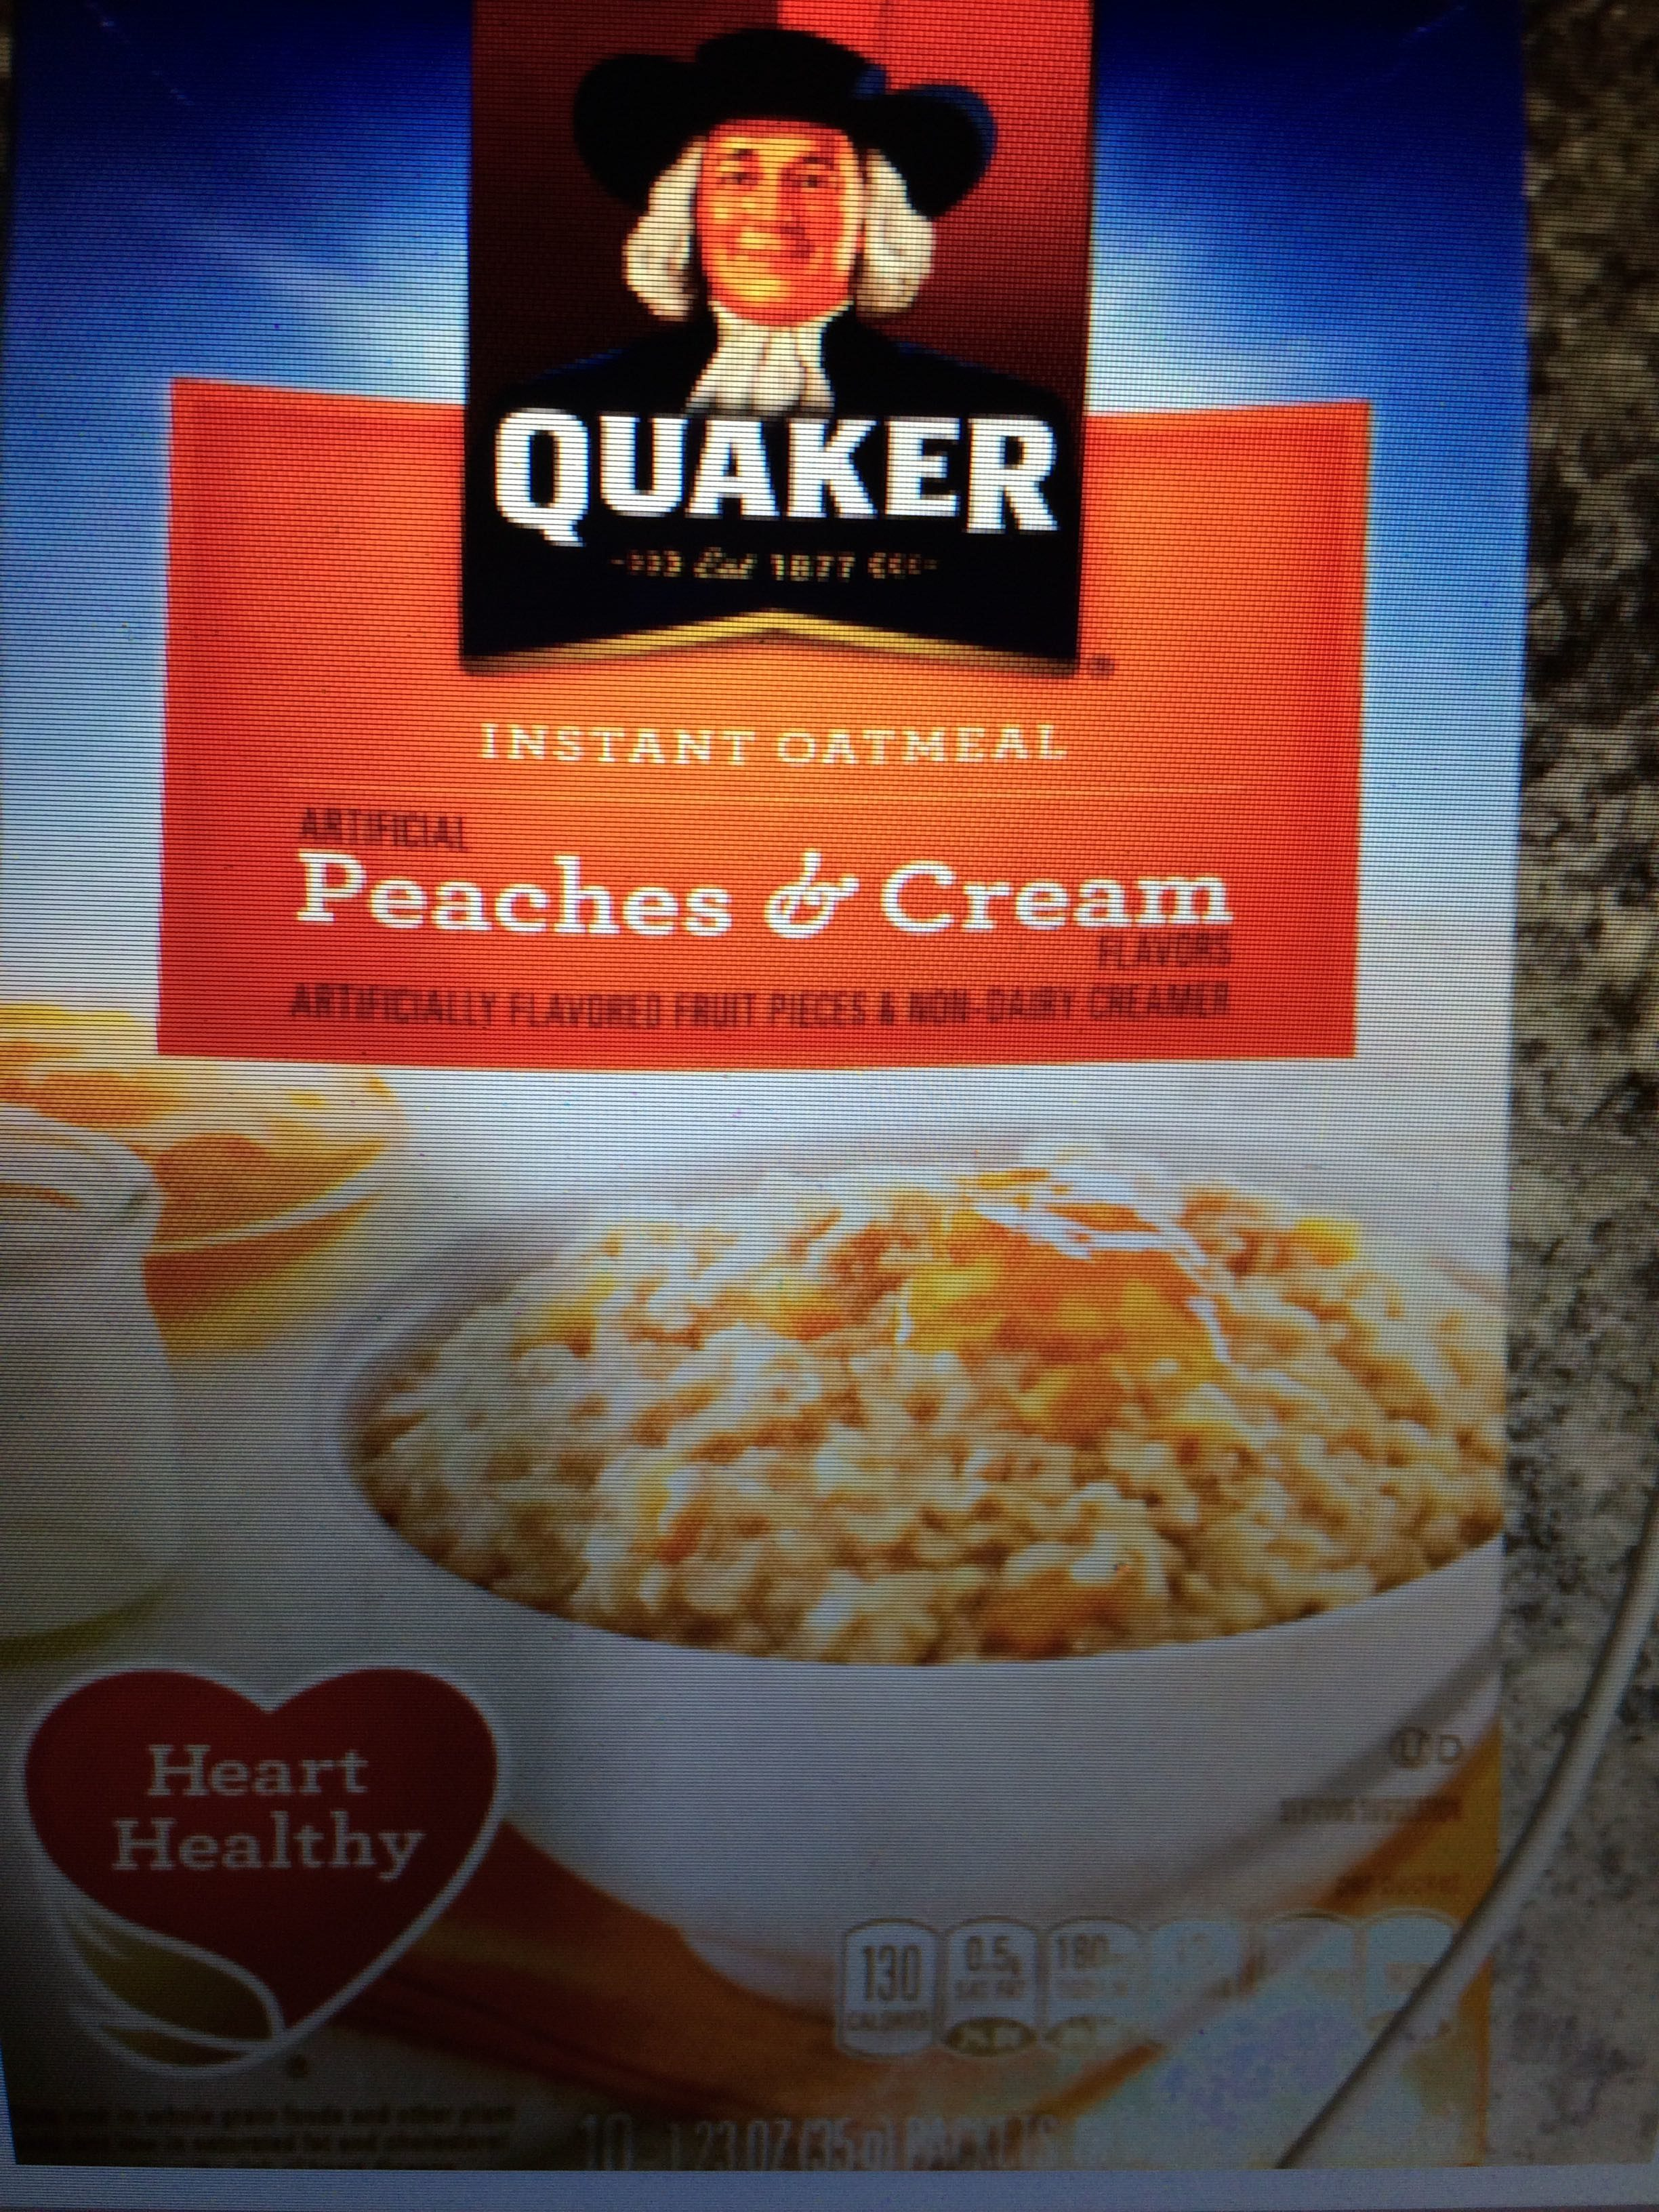 Quaker Peaches & Cream Instant Oatmeal (10-1.23 Ounce) 12.3 Ounce 10 Count Paper Box - Product - en